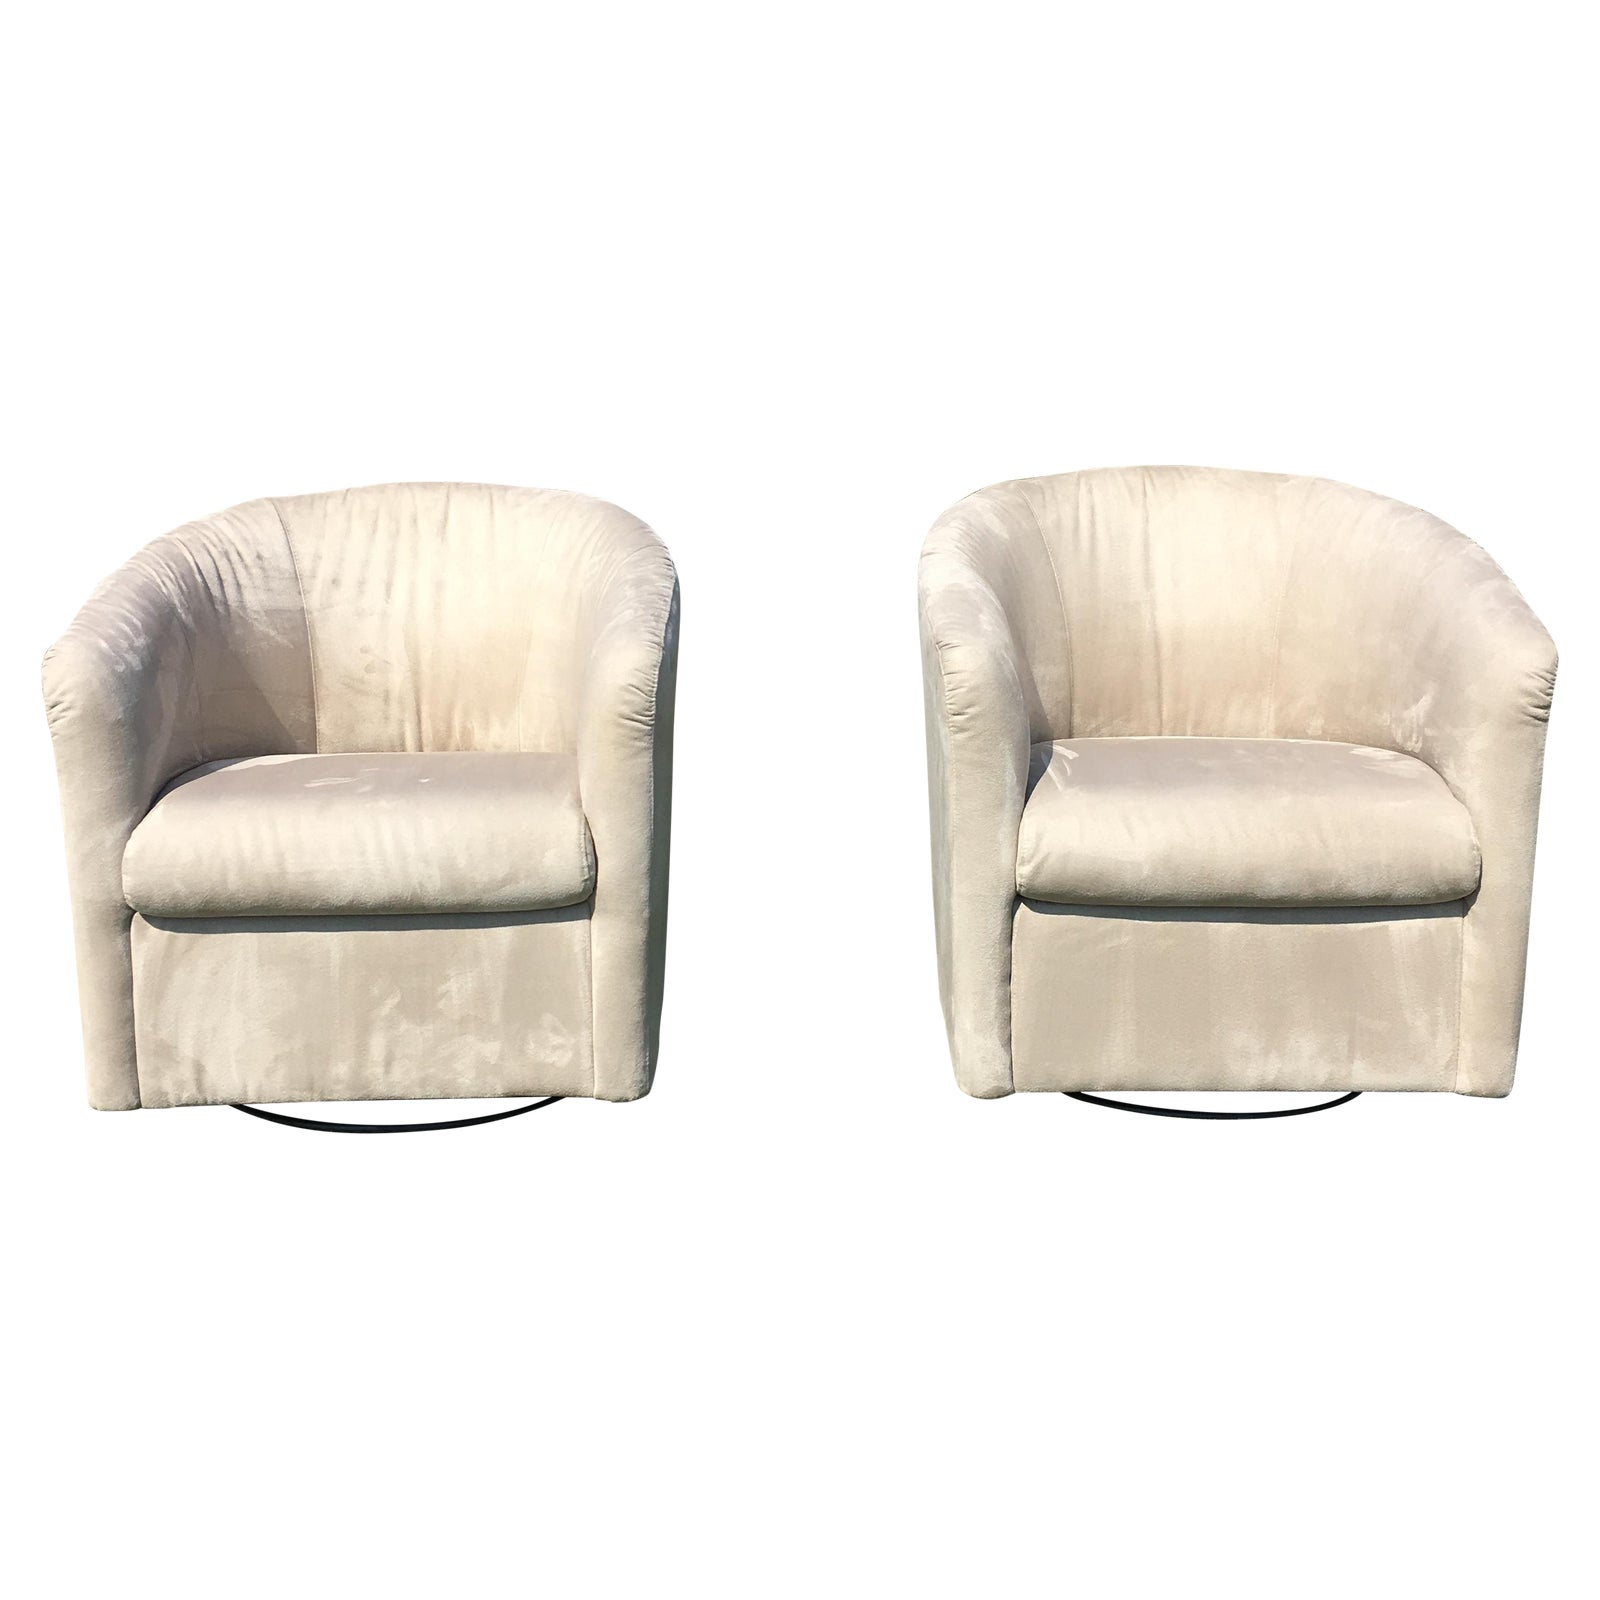 Astonishing Natuzzi Barrel Swivel Chairs A Pair Squirreltailoven Fun Painted Chair Ideas Images Squirreltailovenorg